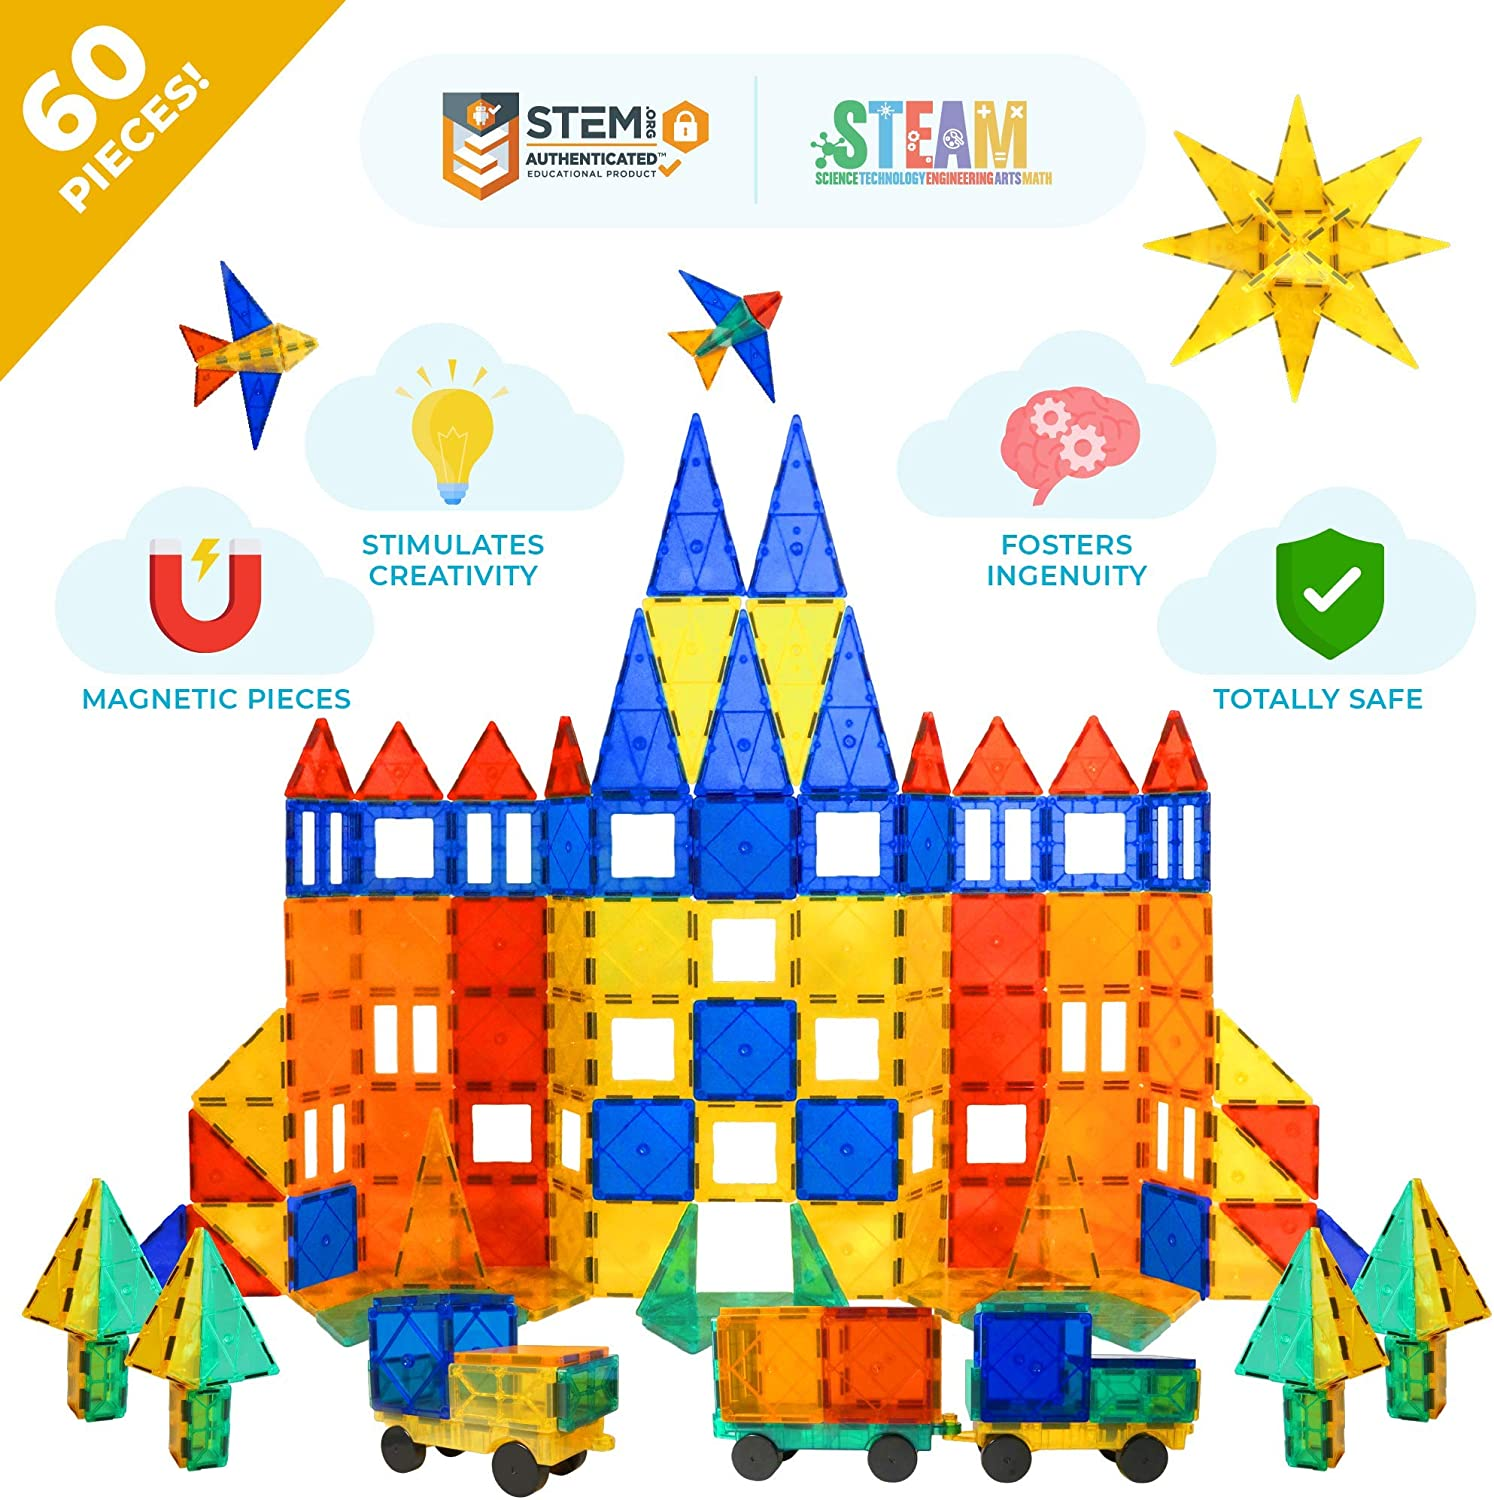 Tytan Magnetic Tiles & Building Blocks - STEM Certified Toys, Magnets for Kids, Boys/Girls Fun, Creative, Educational - (60)